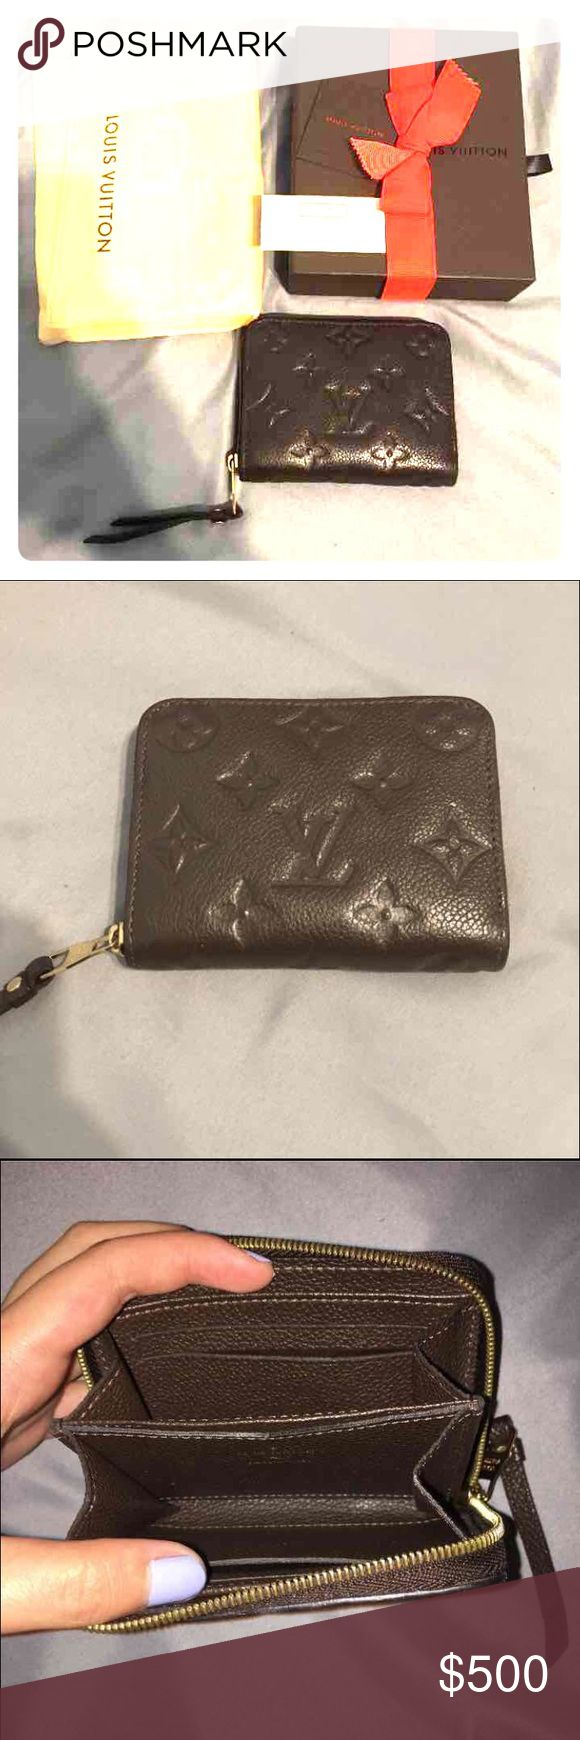 Louis Vuitton Empreinte Terre Zippy Coin Purse This is the empreinte or empriente Zippy coin purse in terre which is the earth brown color. 100% authentic, the wallet is in great condition and barely used. The hardware is nice and shiny and leather is amazing. Date code reads: TS4103 . Cute little compact wallet. NO TRADES Louis Vuitton Bags Wallets